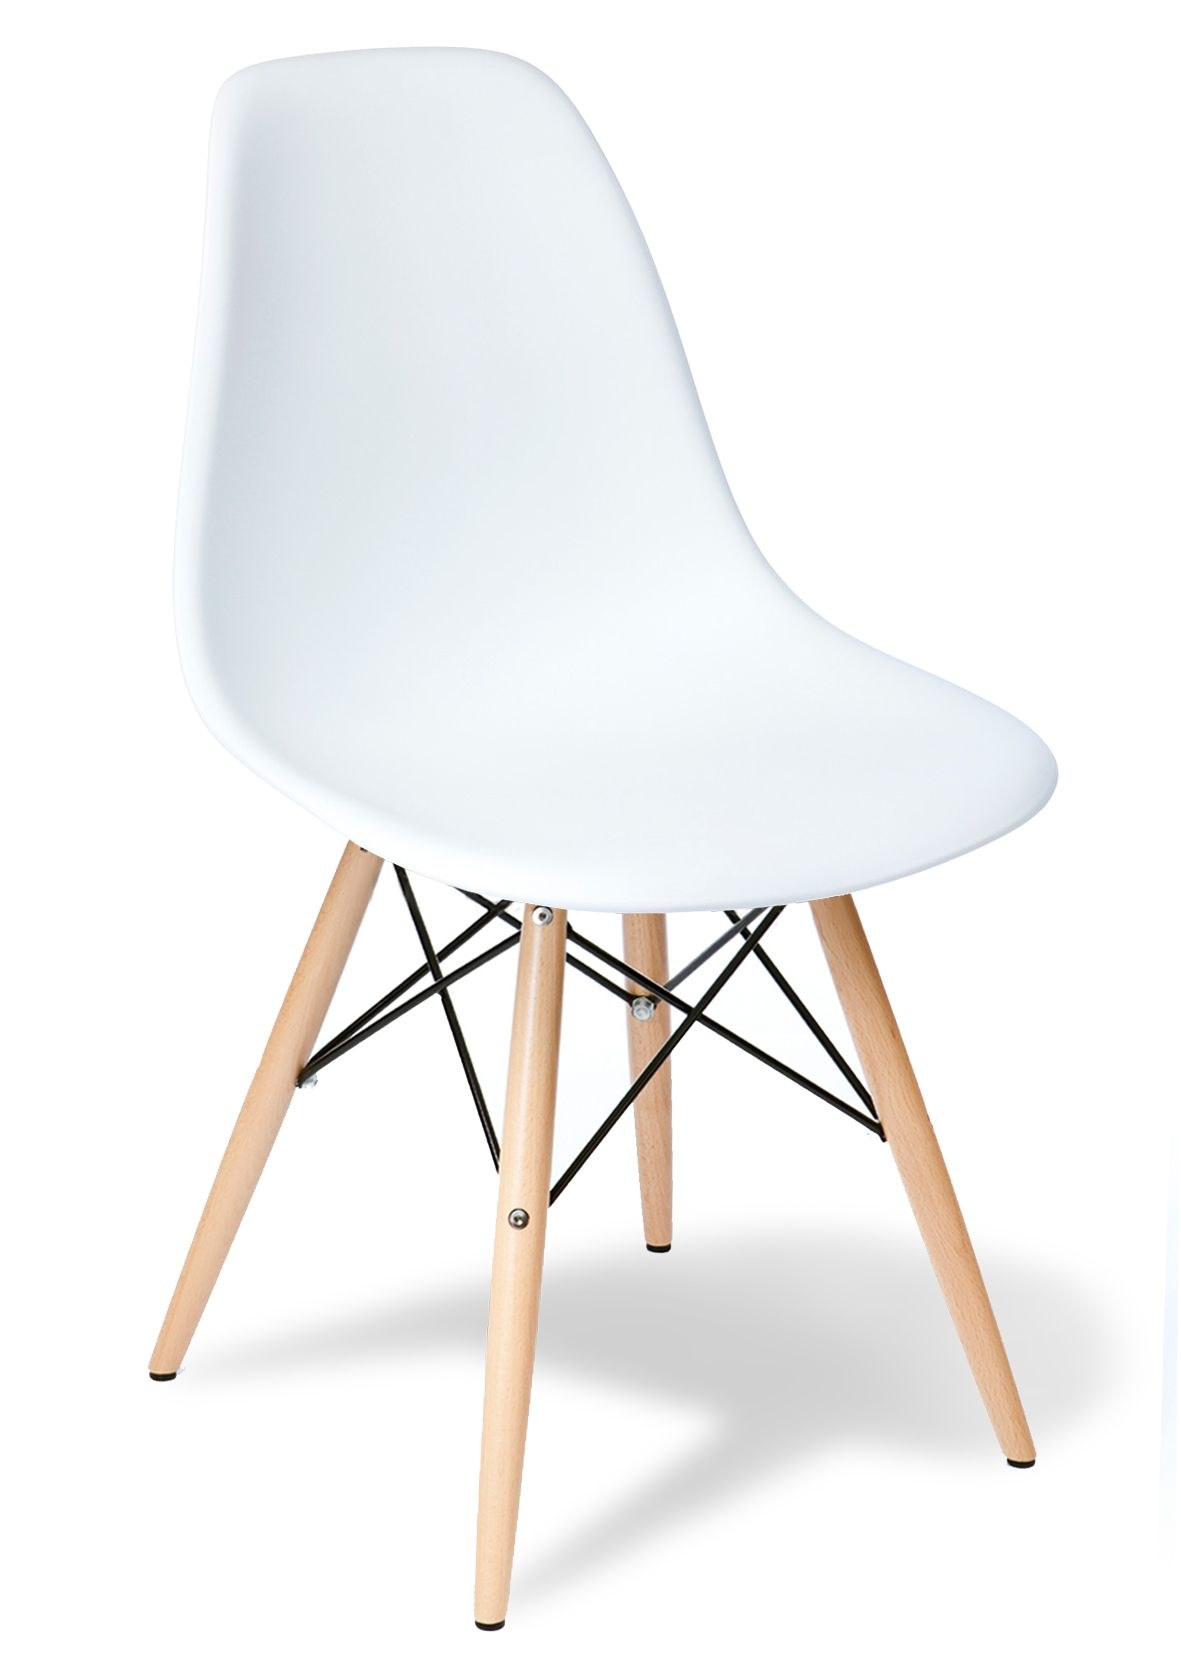 Chaise Eames DSW Inspiration High Quality